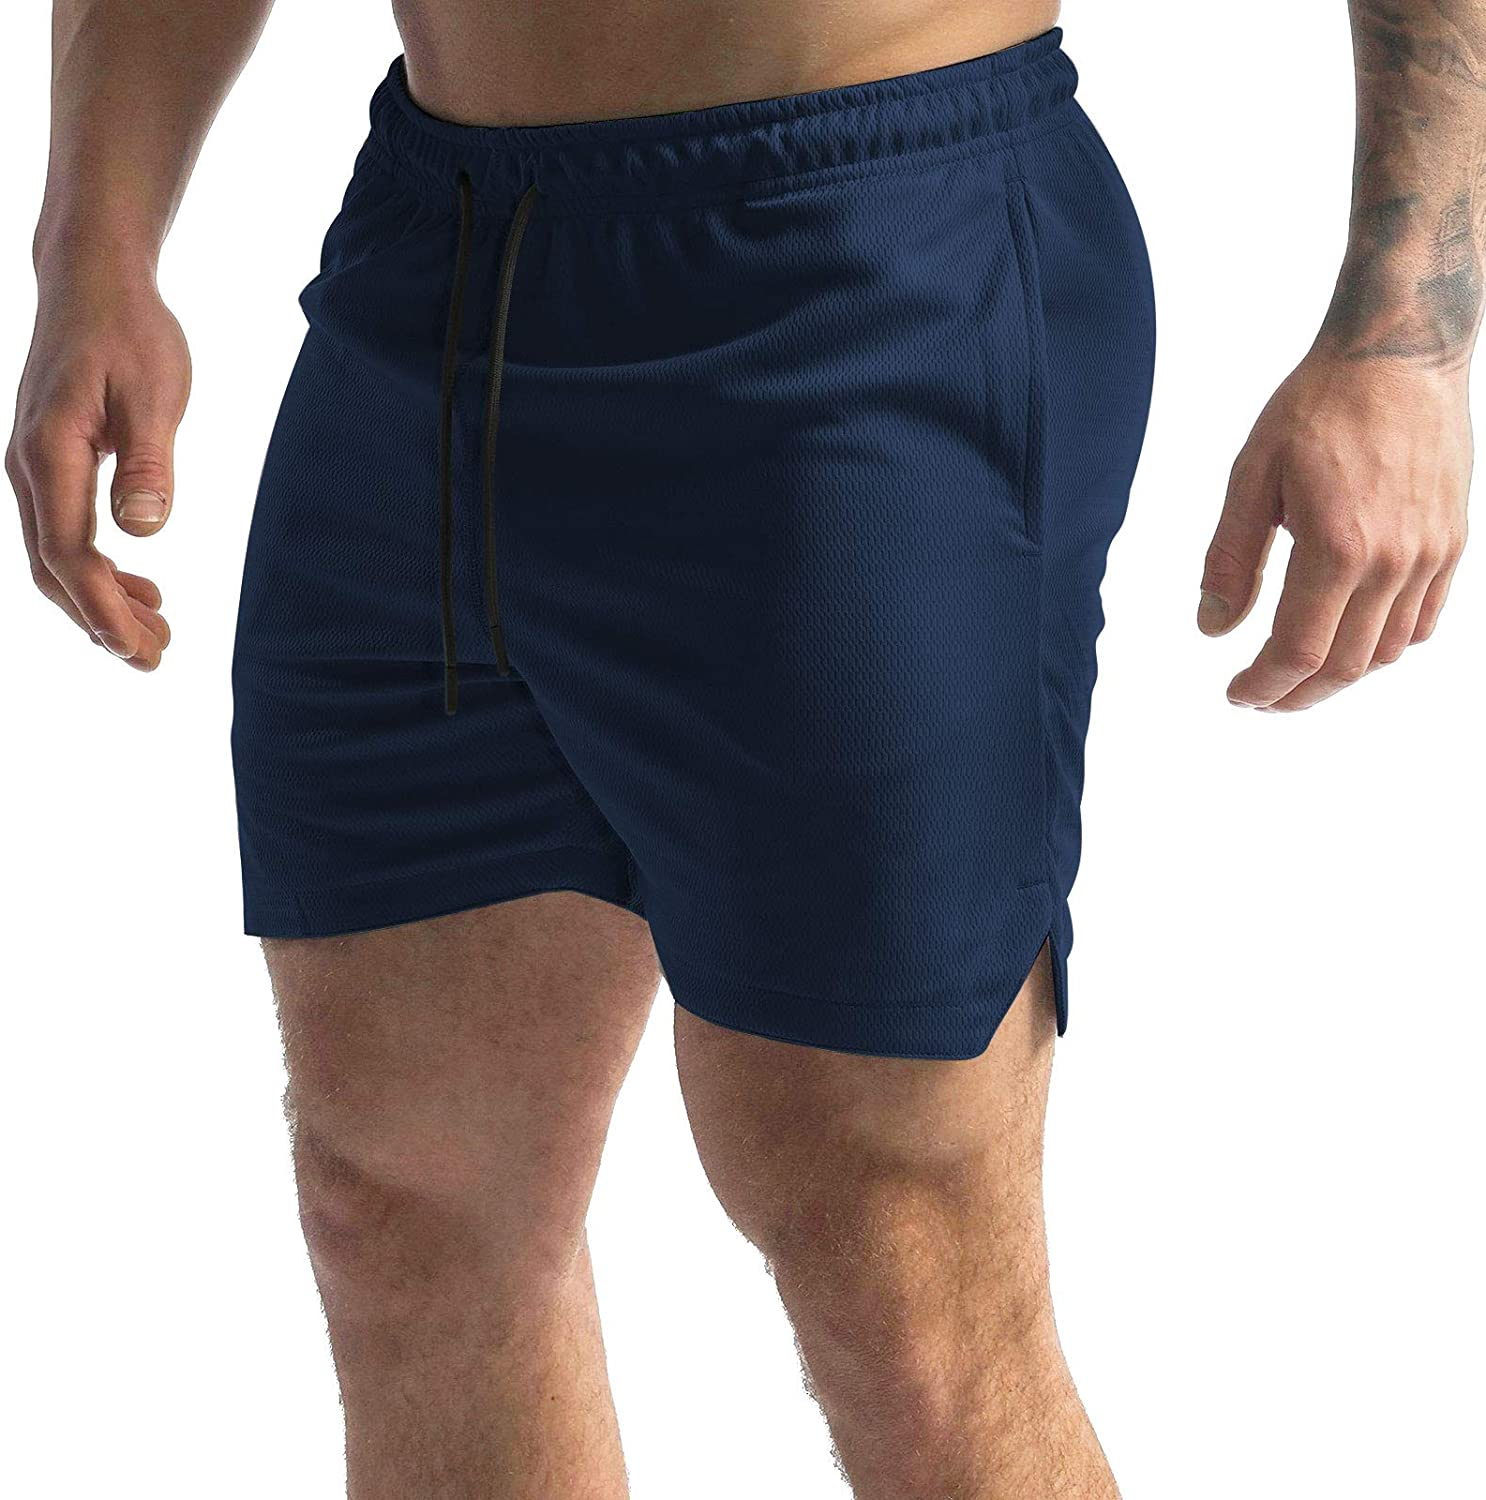 GANSANRO Athletic Shorts 2021 autumn and winter new for Men Long-awaited Workout Quick R Mens Dry